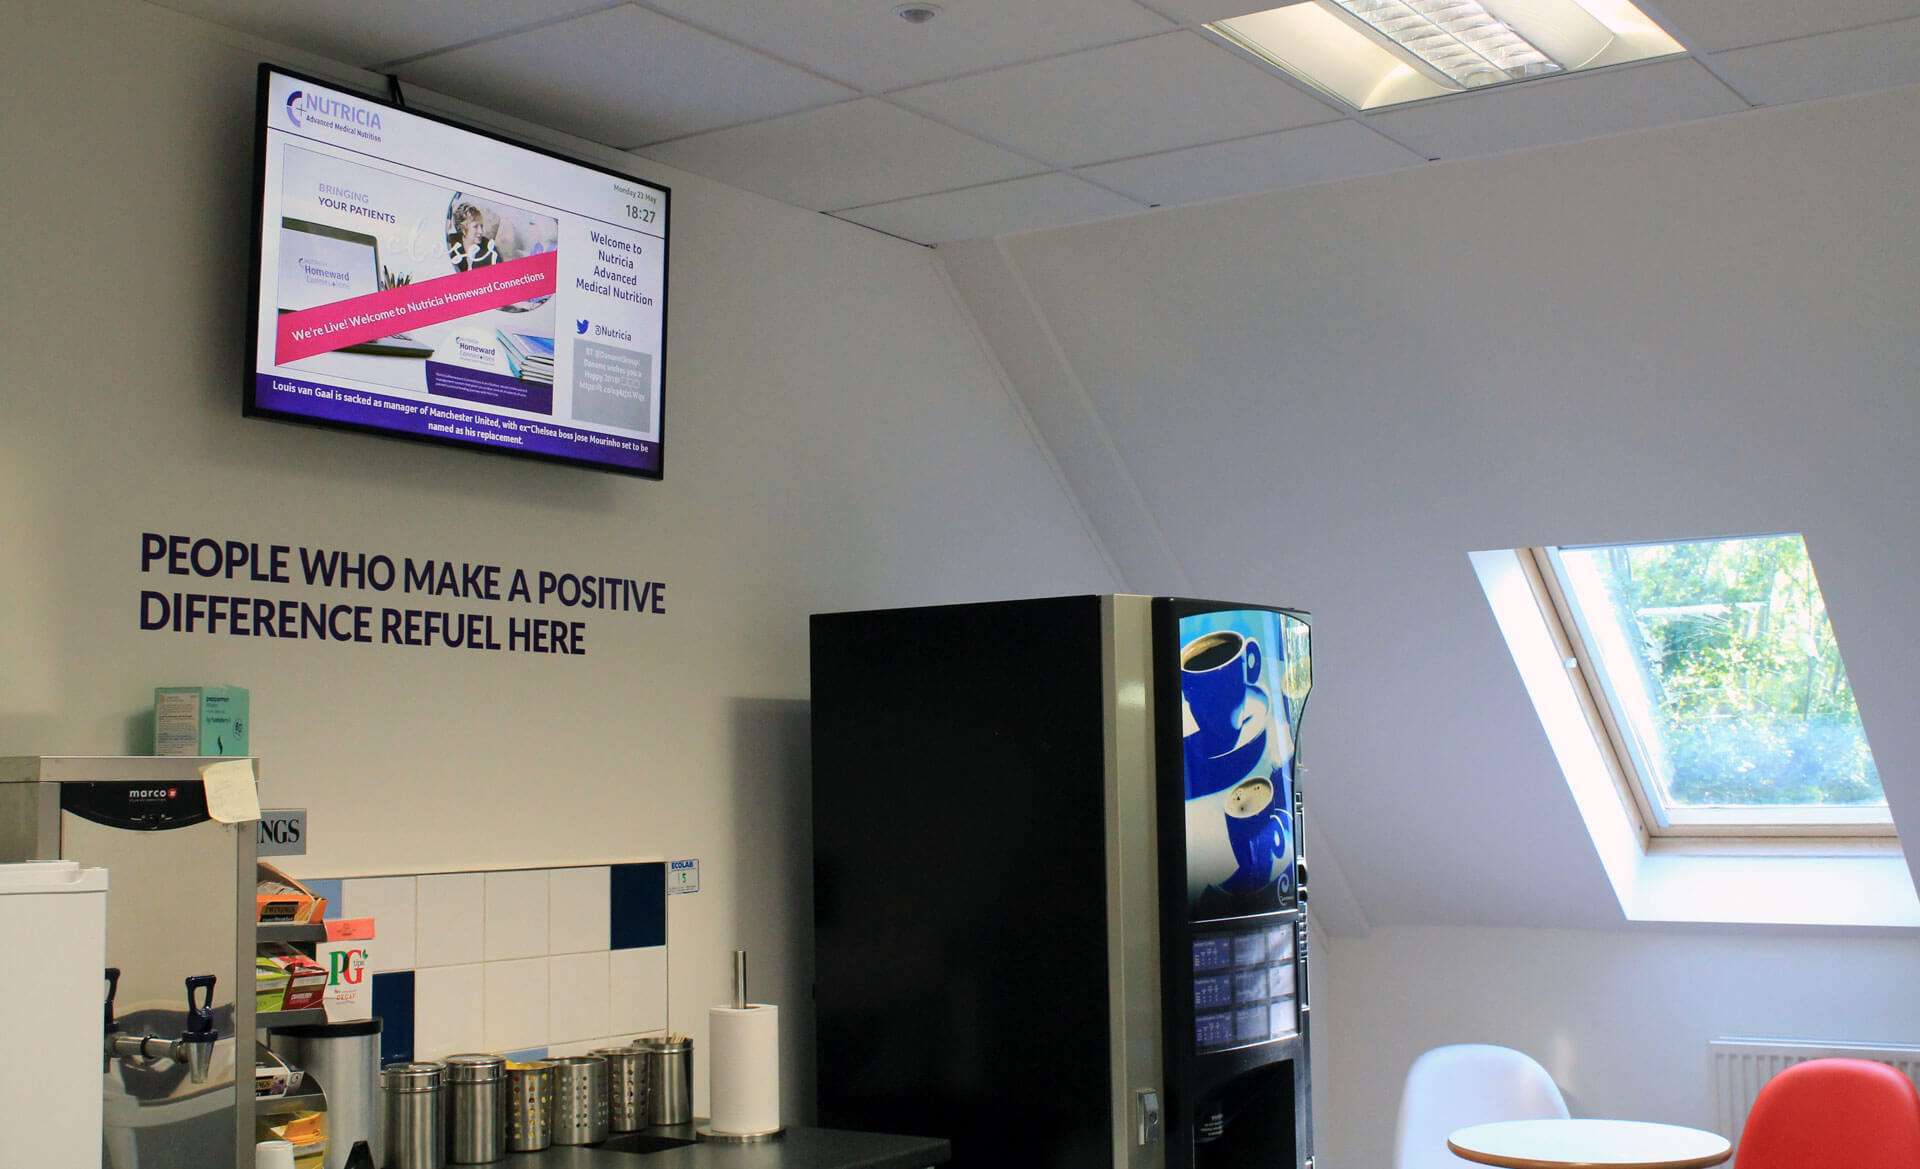 Eclipse Digital Media Digital Signage Project Danone Nutricia 10